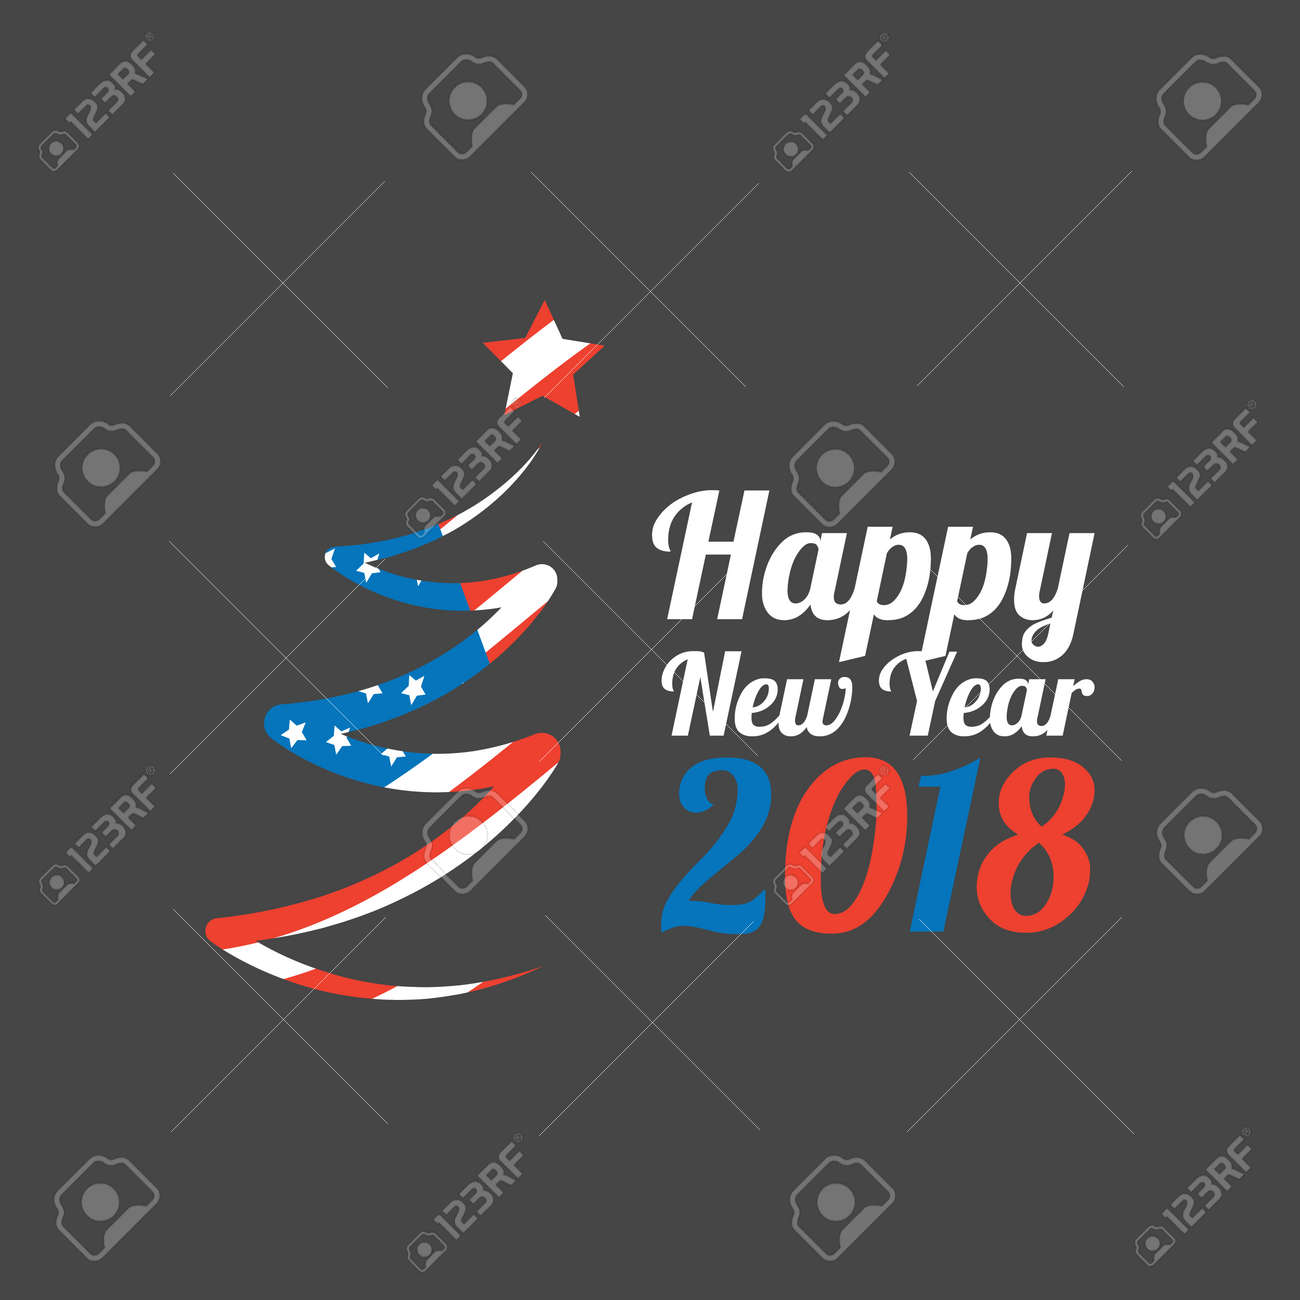 happy new year 2018 banner with usa flag stock vector 83952172